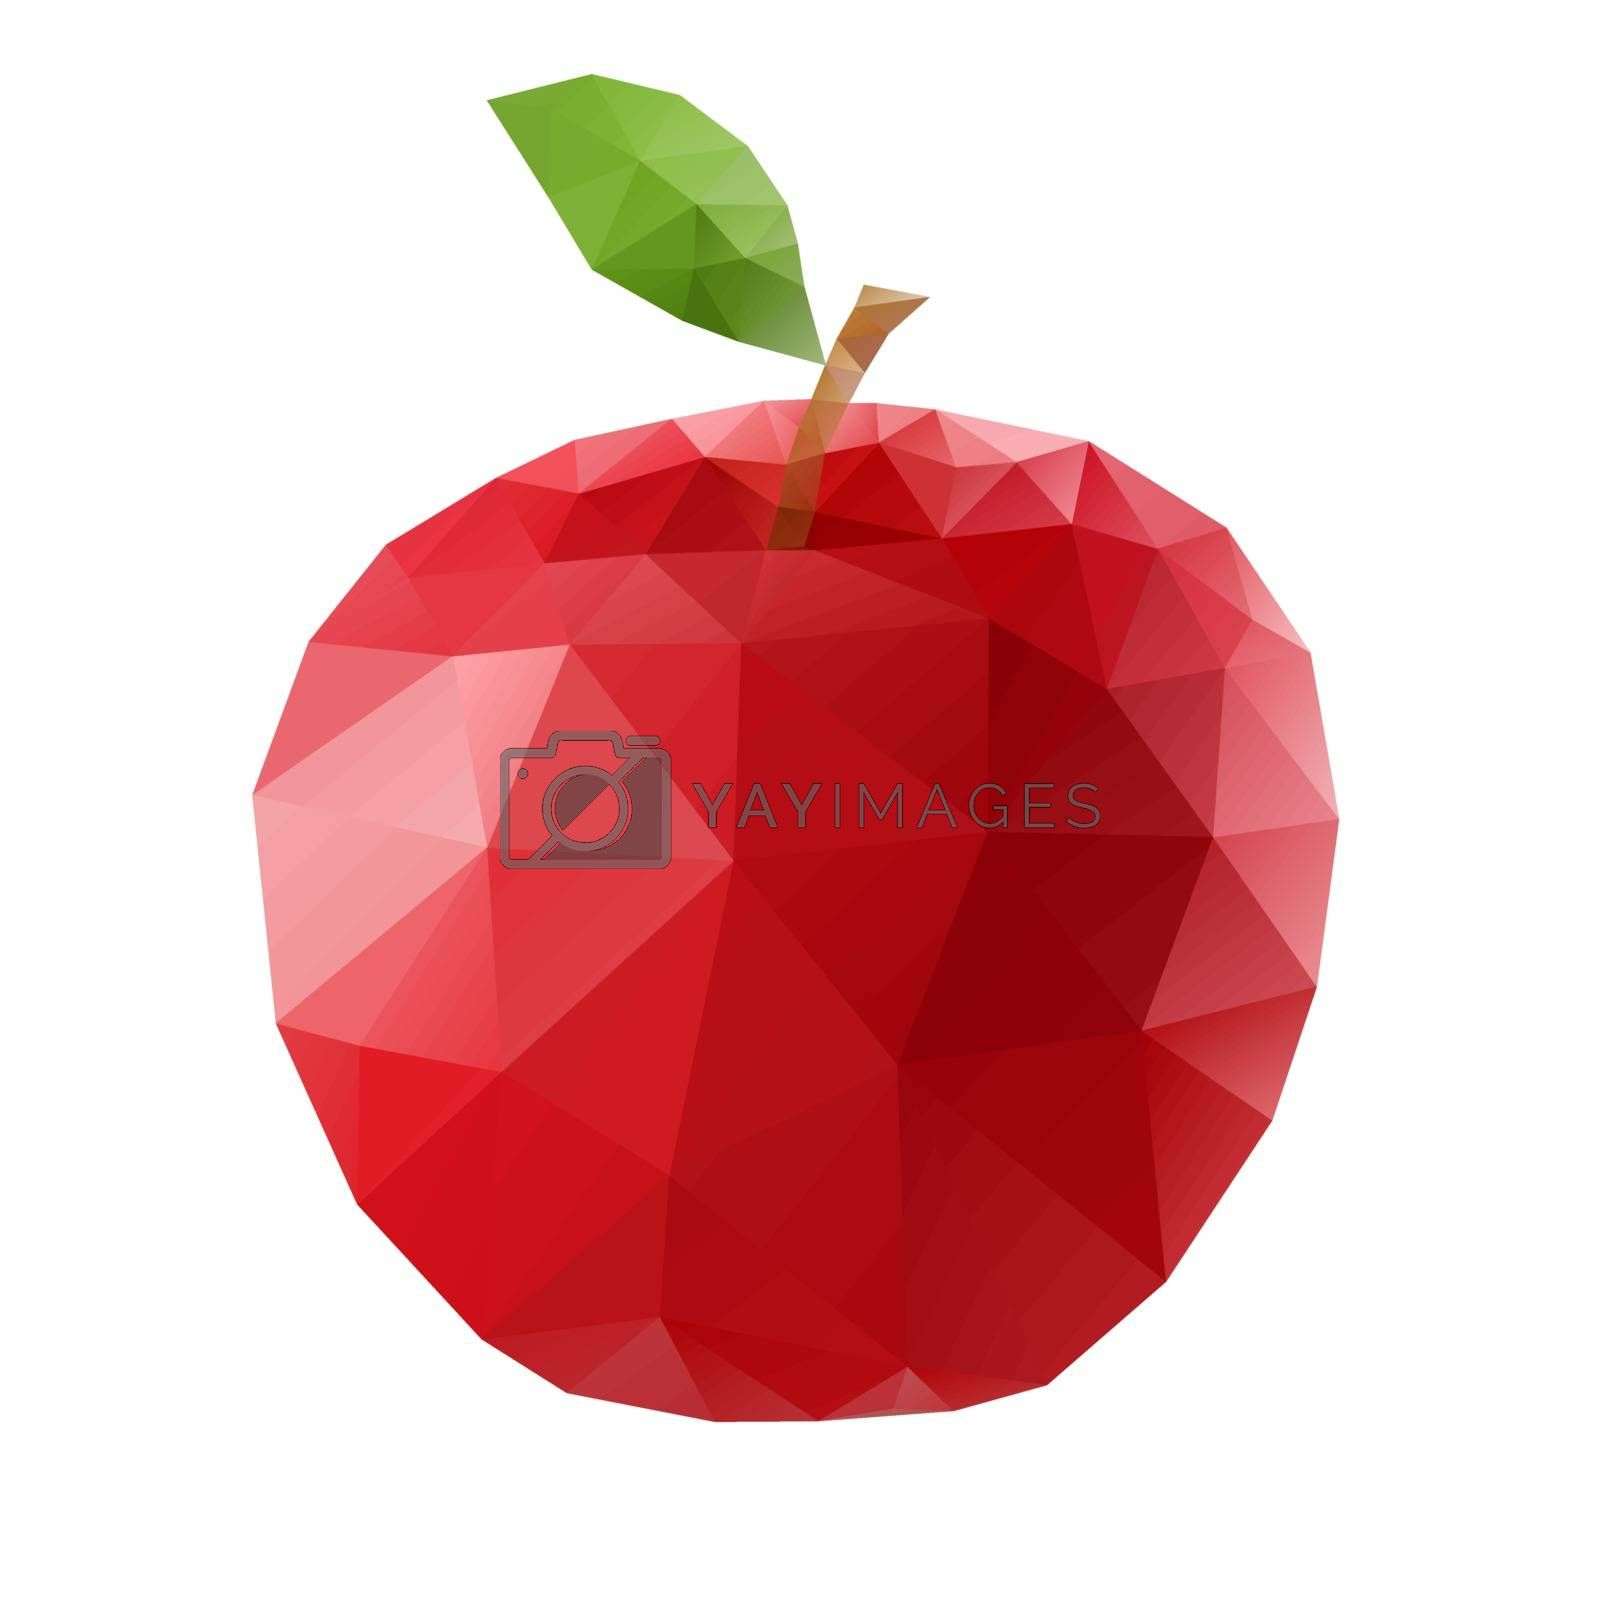 Royalty free image of Polygonal apple by dvarg